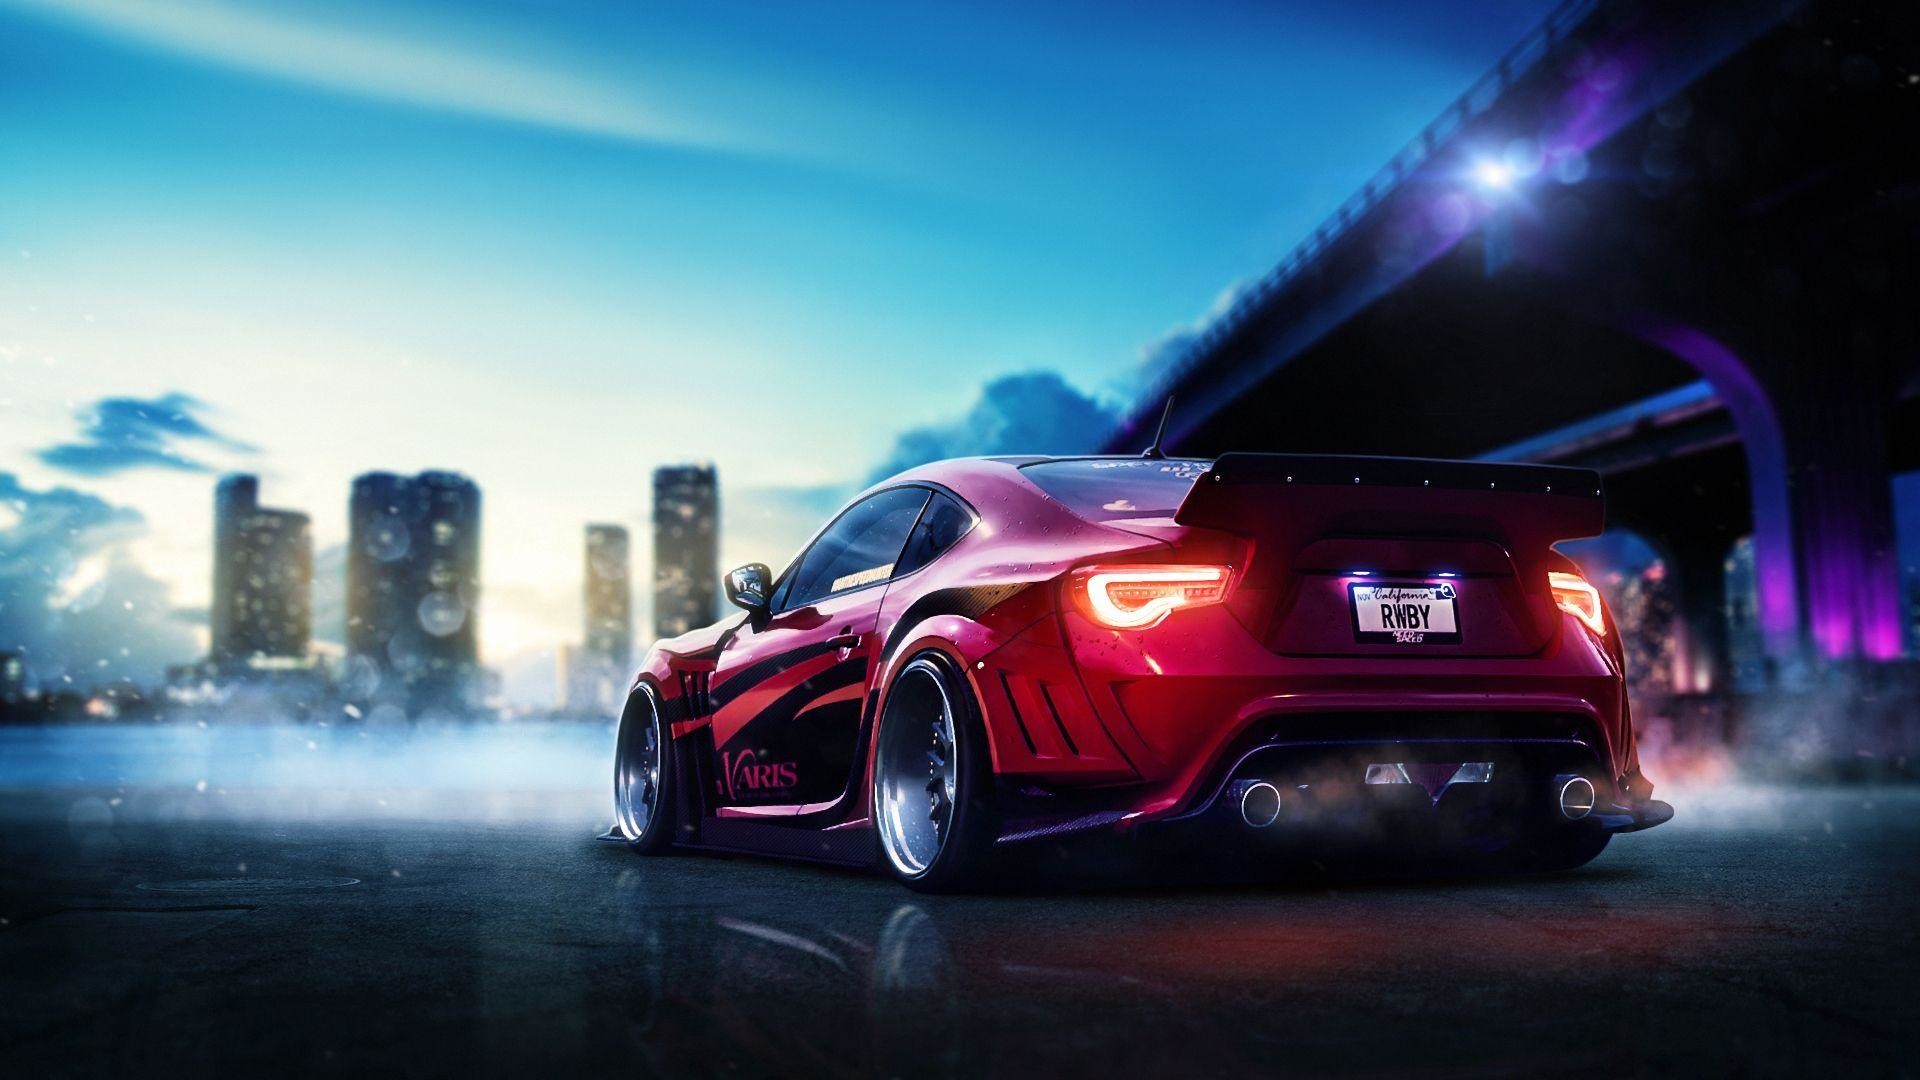 Res: 1920x1080, Toyota GT86 Wallpaper | HD Car Wallpapers